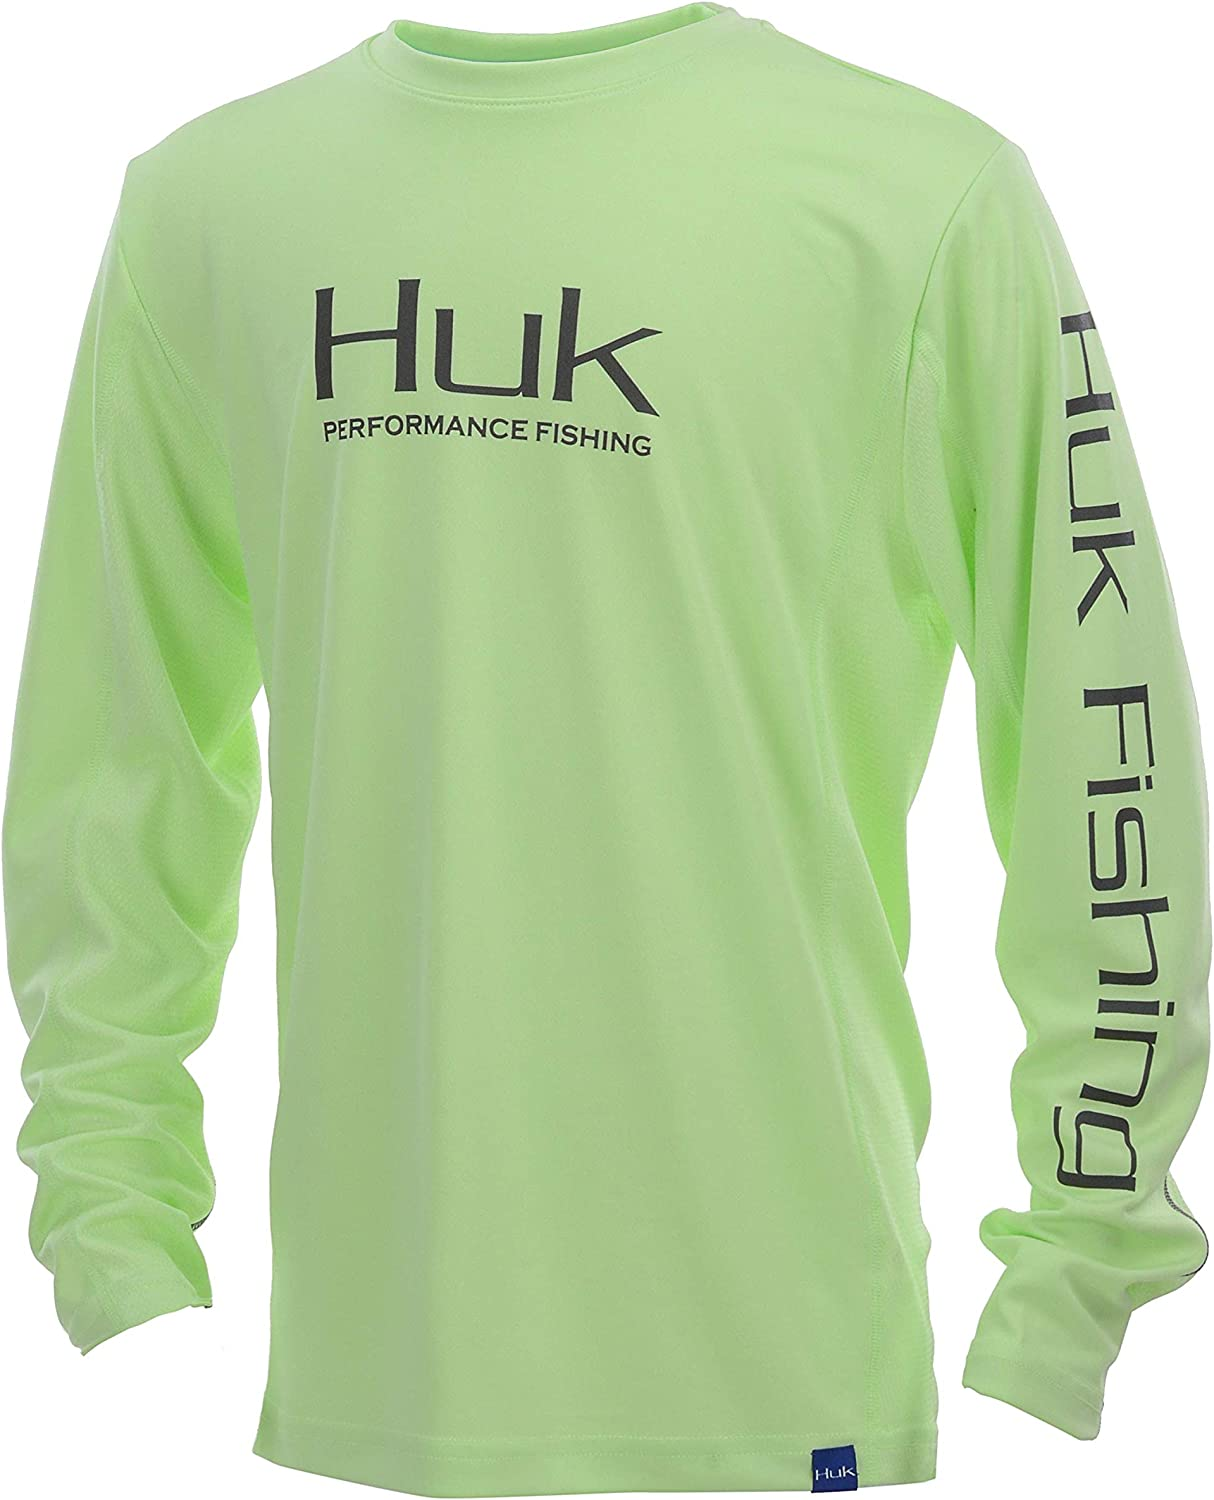 Kids Long Sleeve Performance Fishing Shirt with HUK Unisex-Child Pursuit Camo Vented 30 UPF Sun Protection